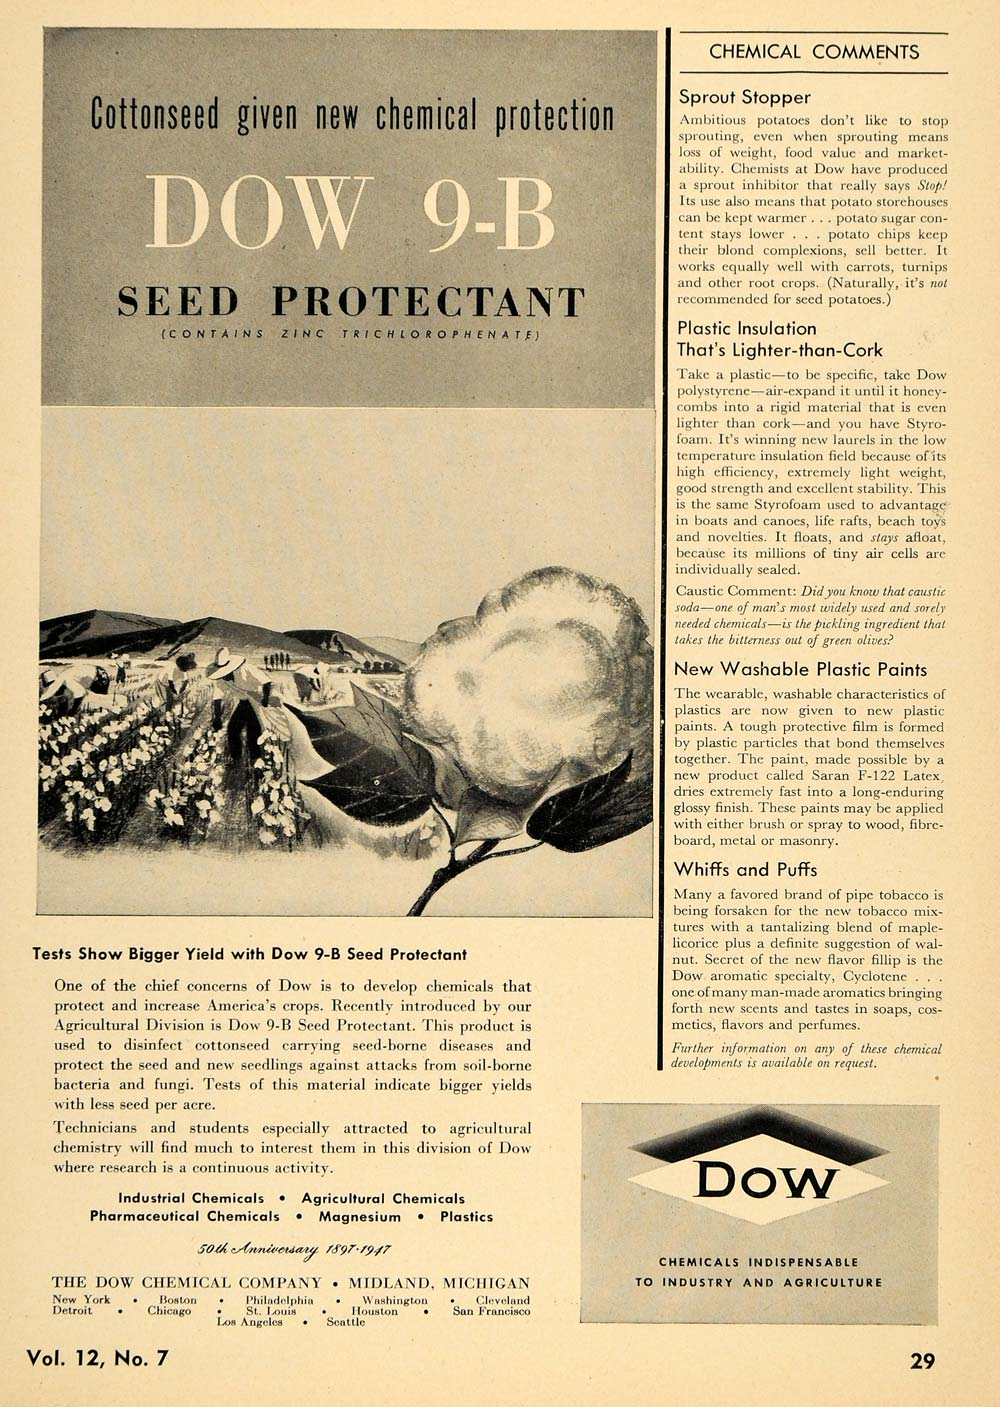 1947 Ad Dow Chemical 9-B Seed Protectant Cotton Field - ORIGINAL TCE1